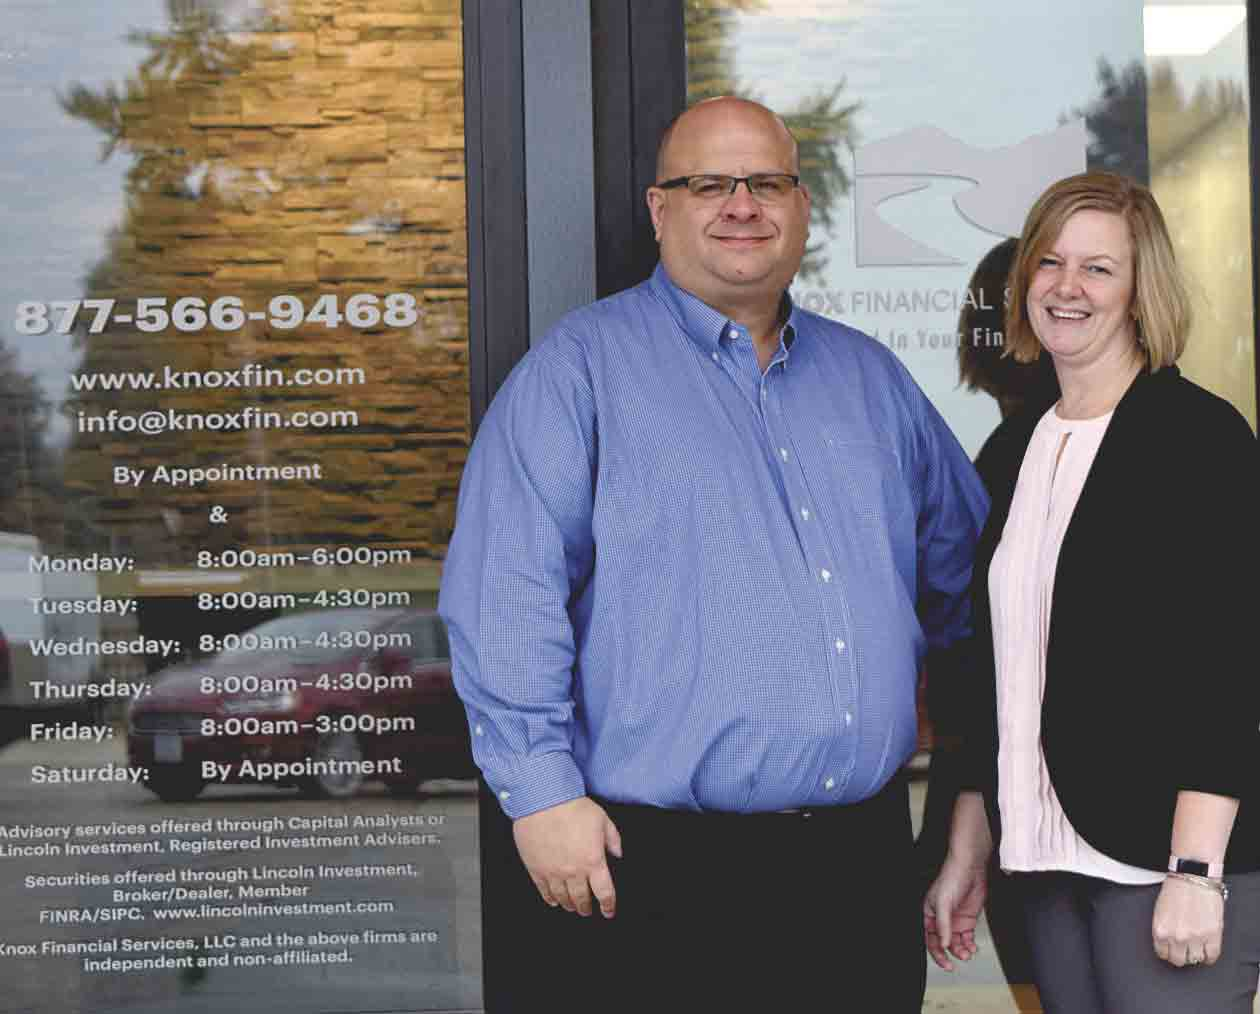 Jason and Amber Knox are excited about the recent opening of Knox Financial Services, LLC at 309 Hwy. 150 N., West Union. They look forward to serving their West Union area clients at their new location, but will continue to divide their time between their two offices in Decorah ad West Union. (...